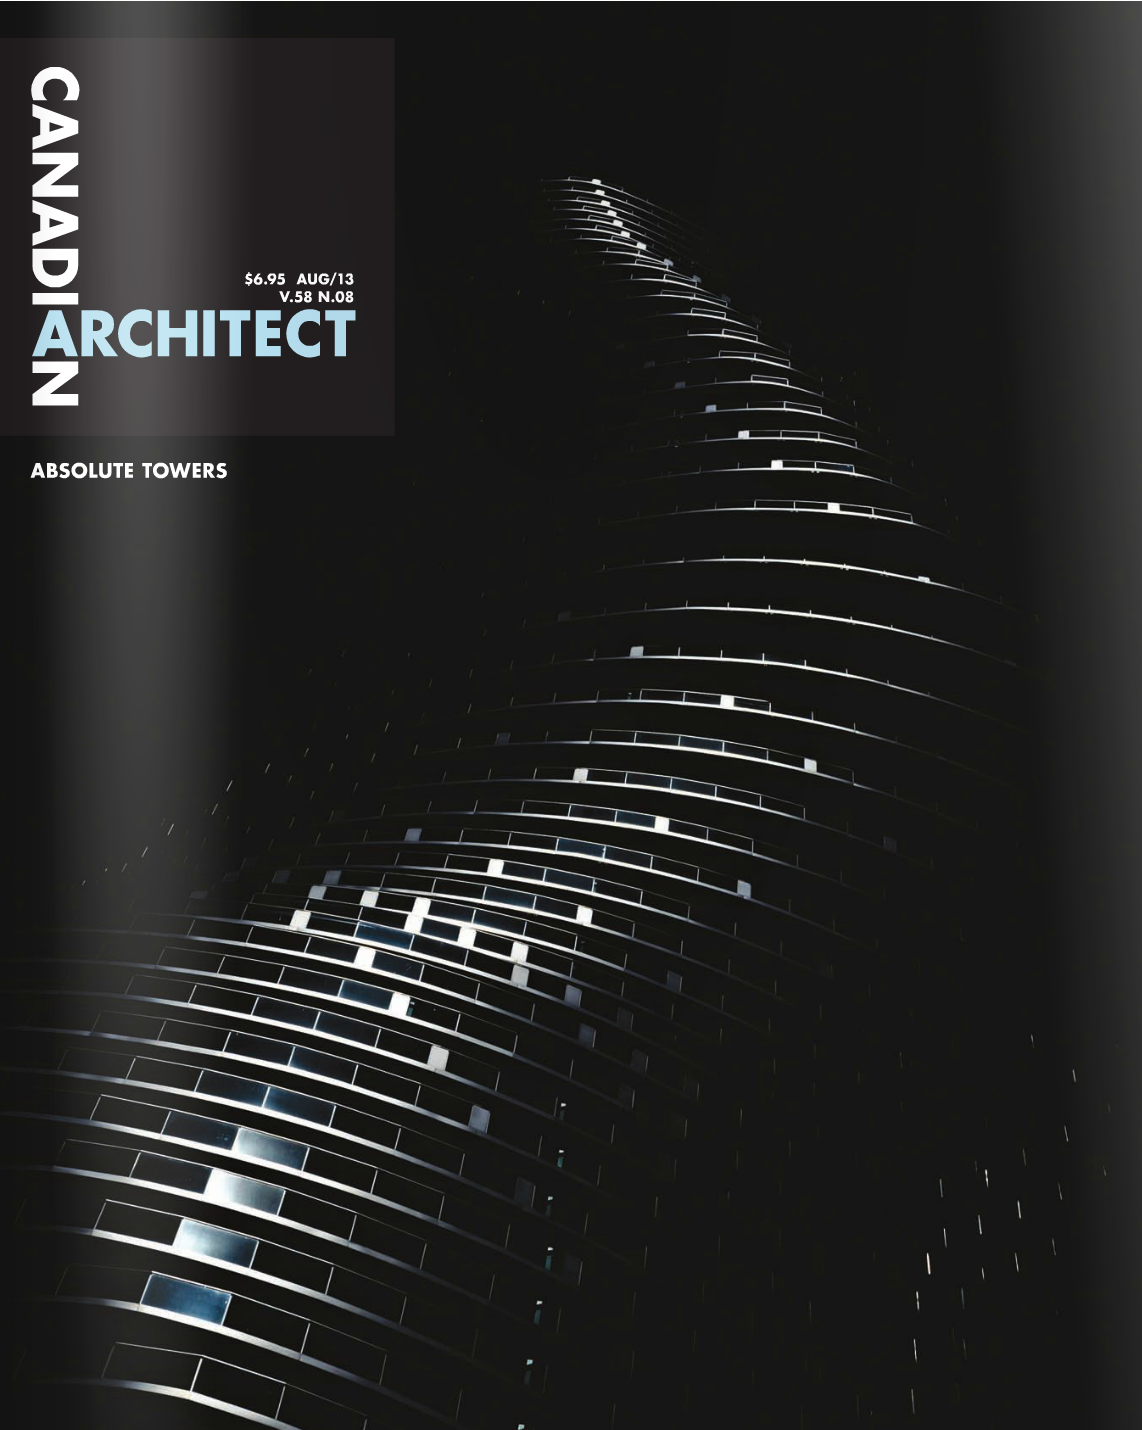 Canadian Architect August 2013 Cover